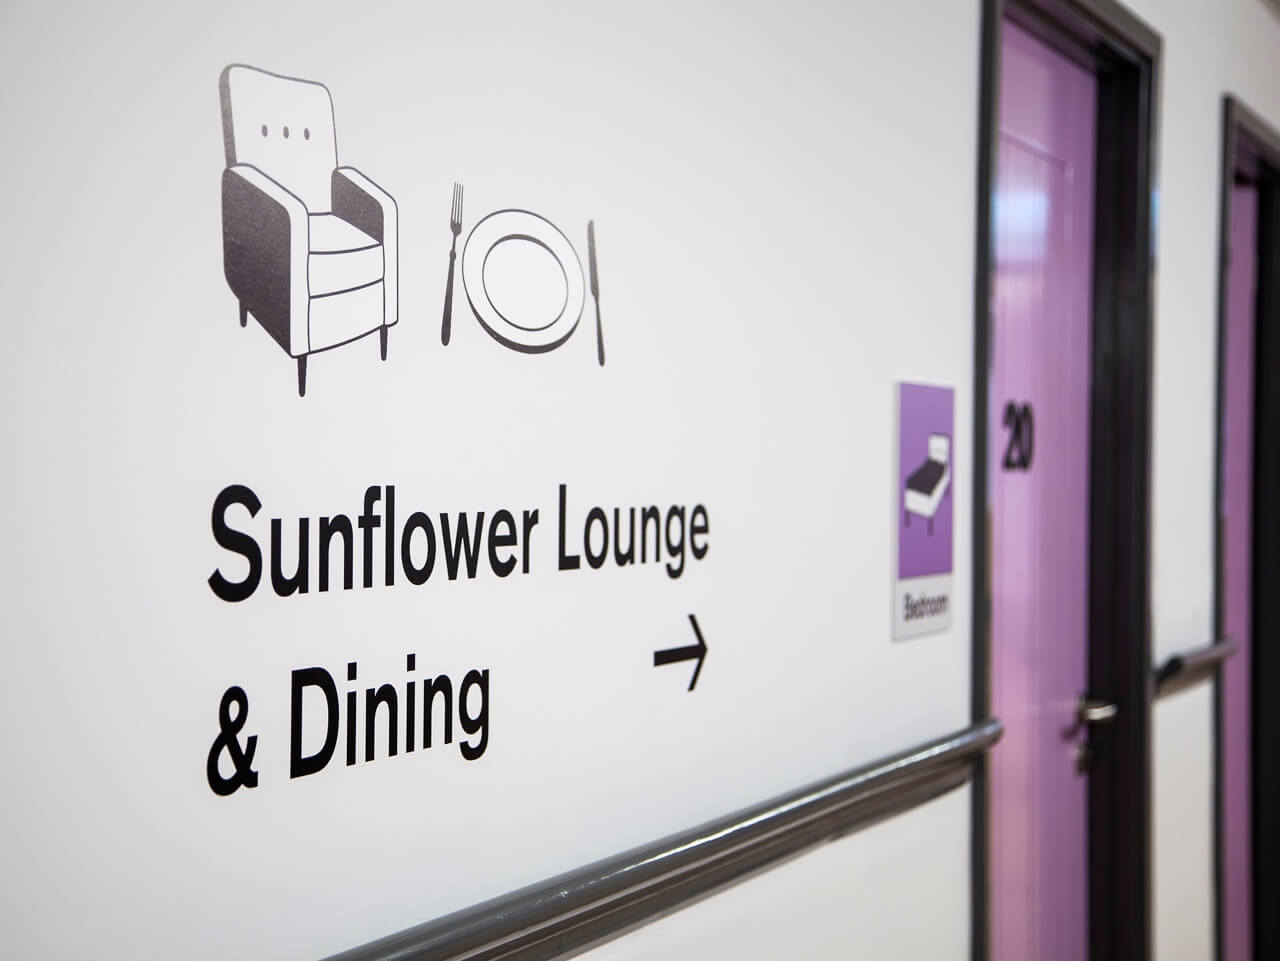 Wall graphics with dementia friendly directional signs at Haven Court